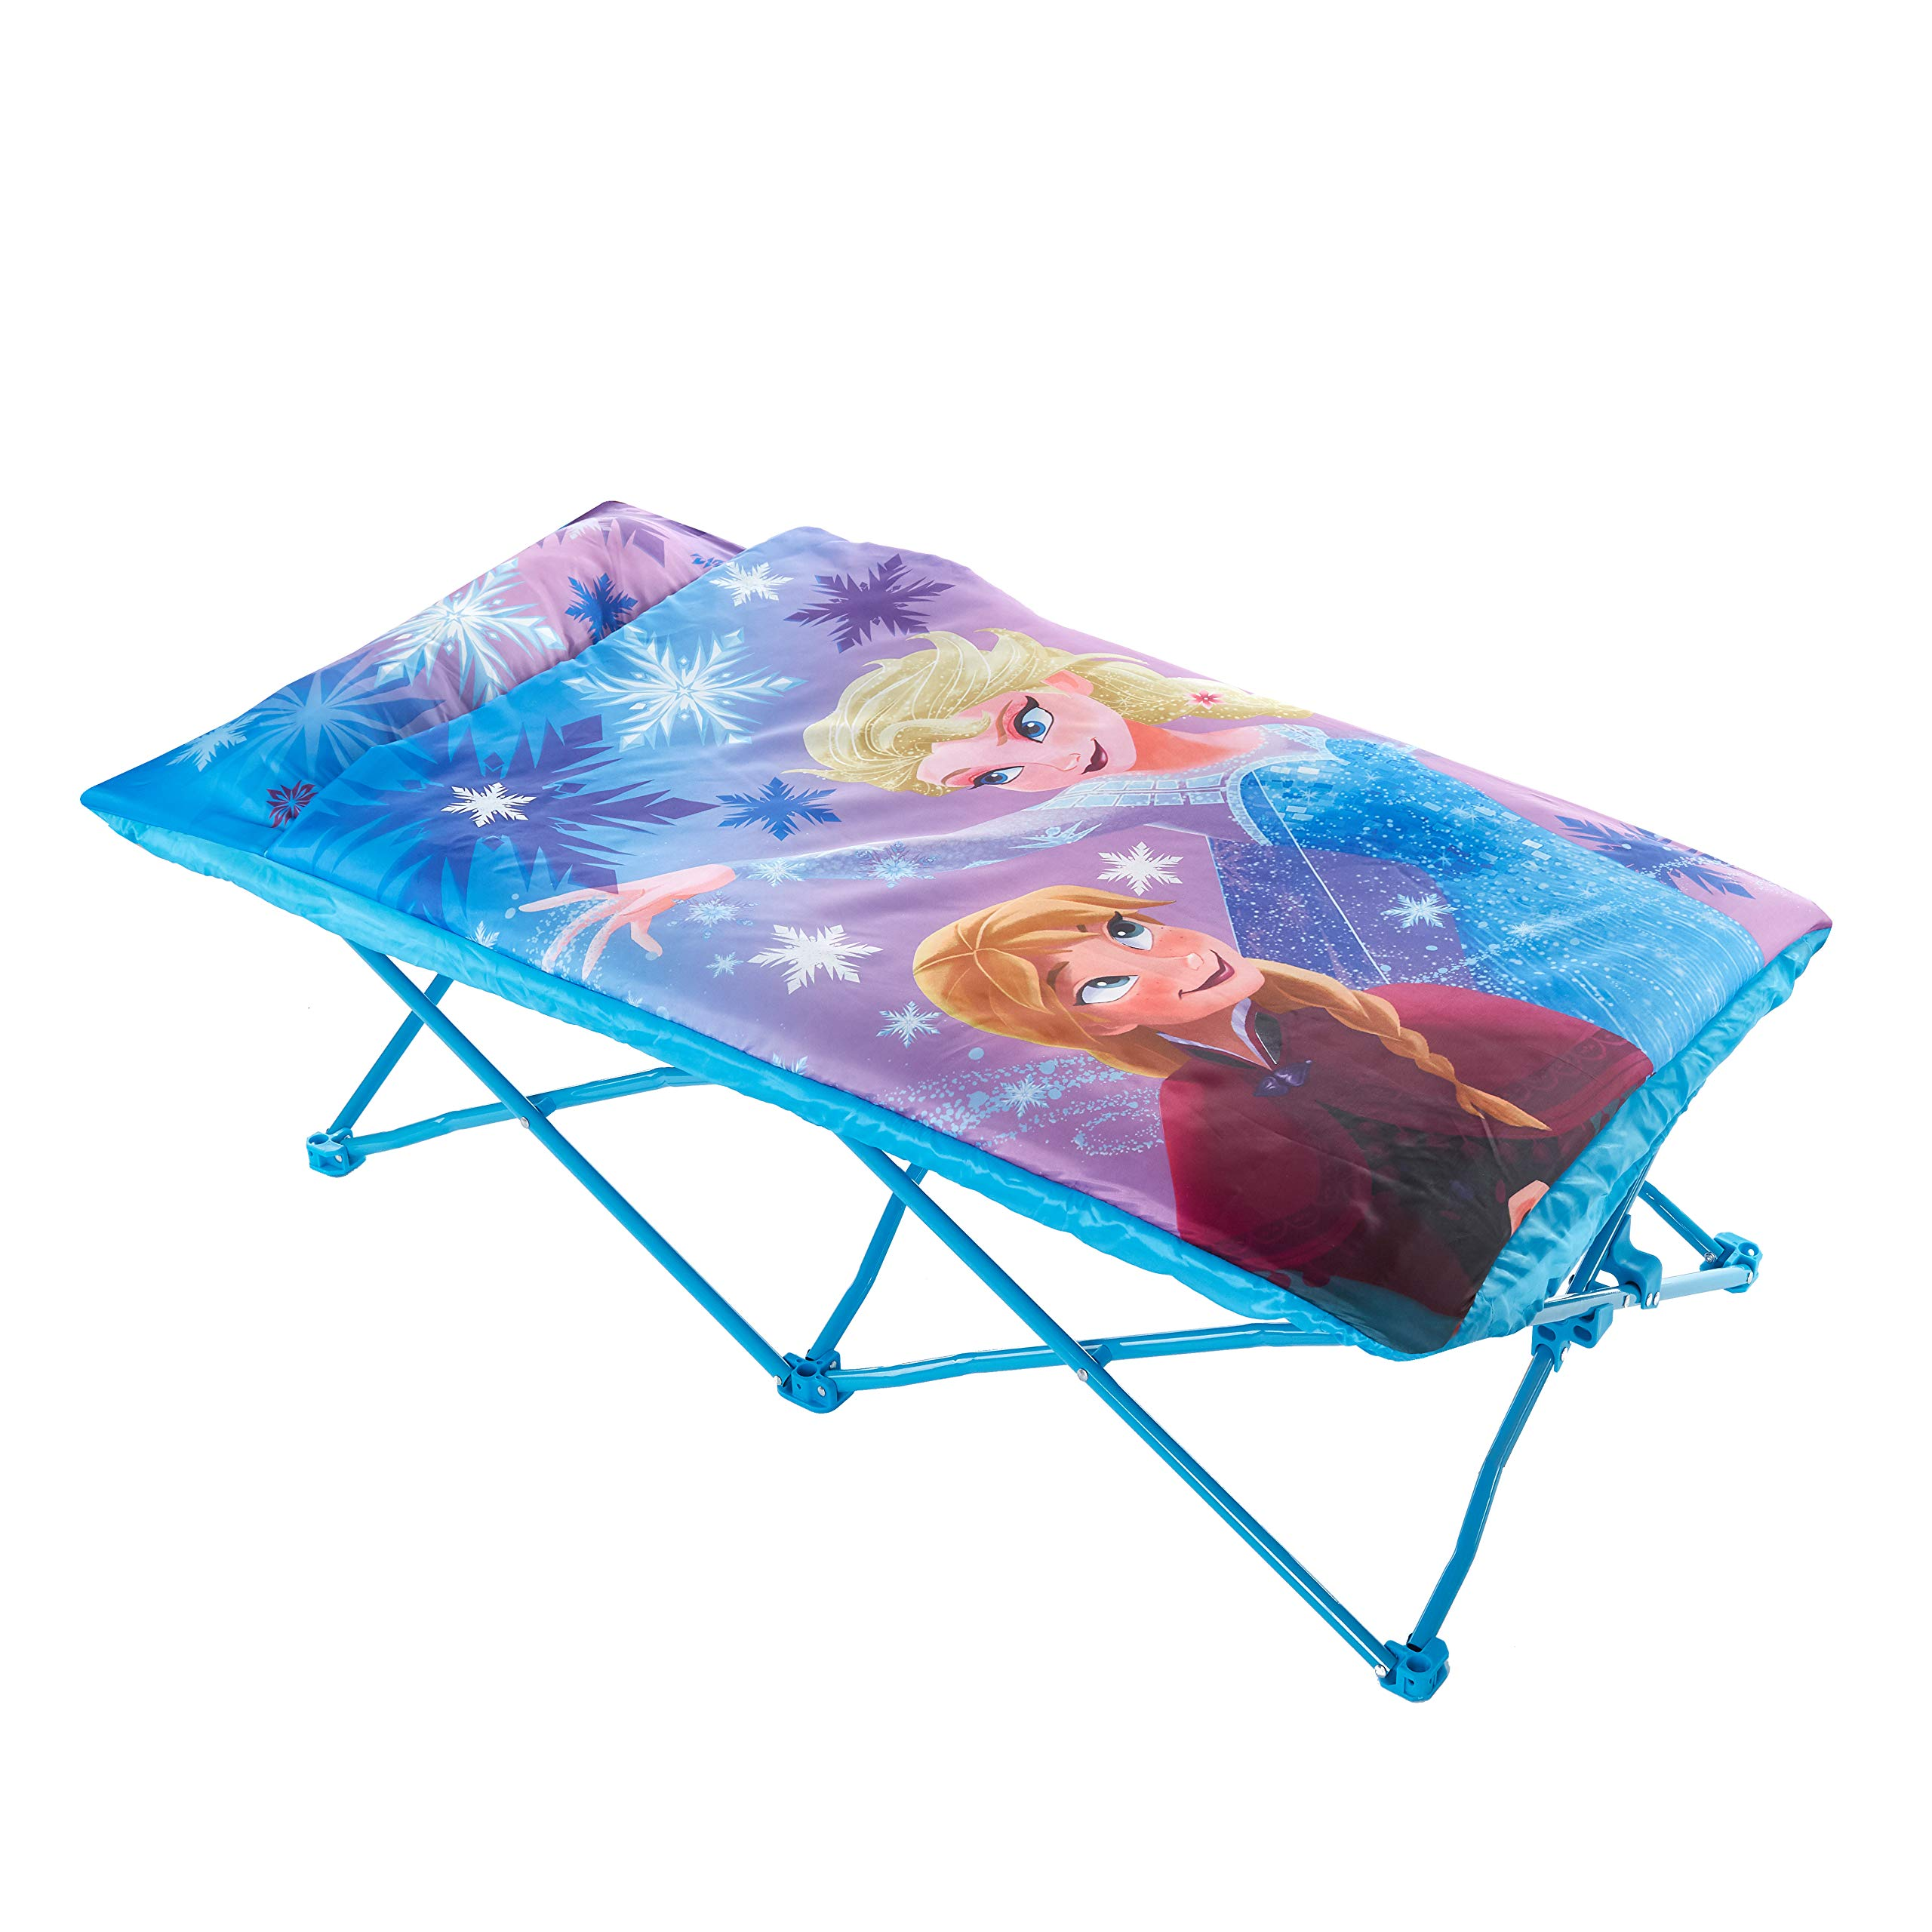 Disney Frozen Portable Slumber Cot by Disney